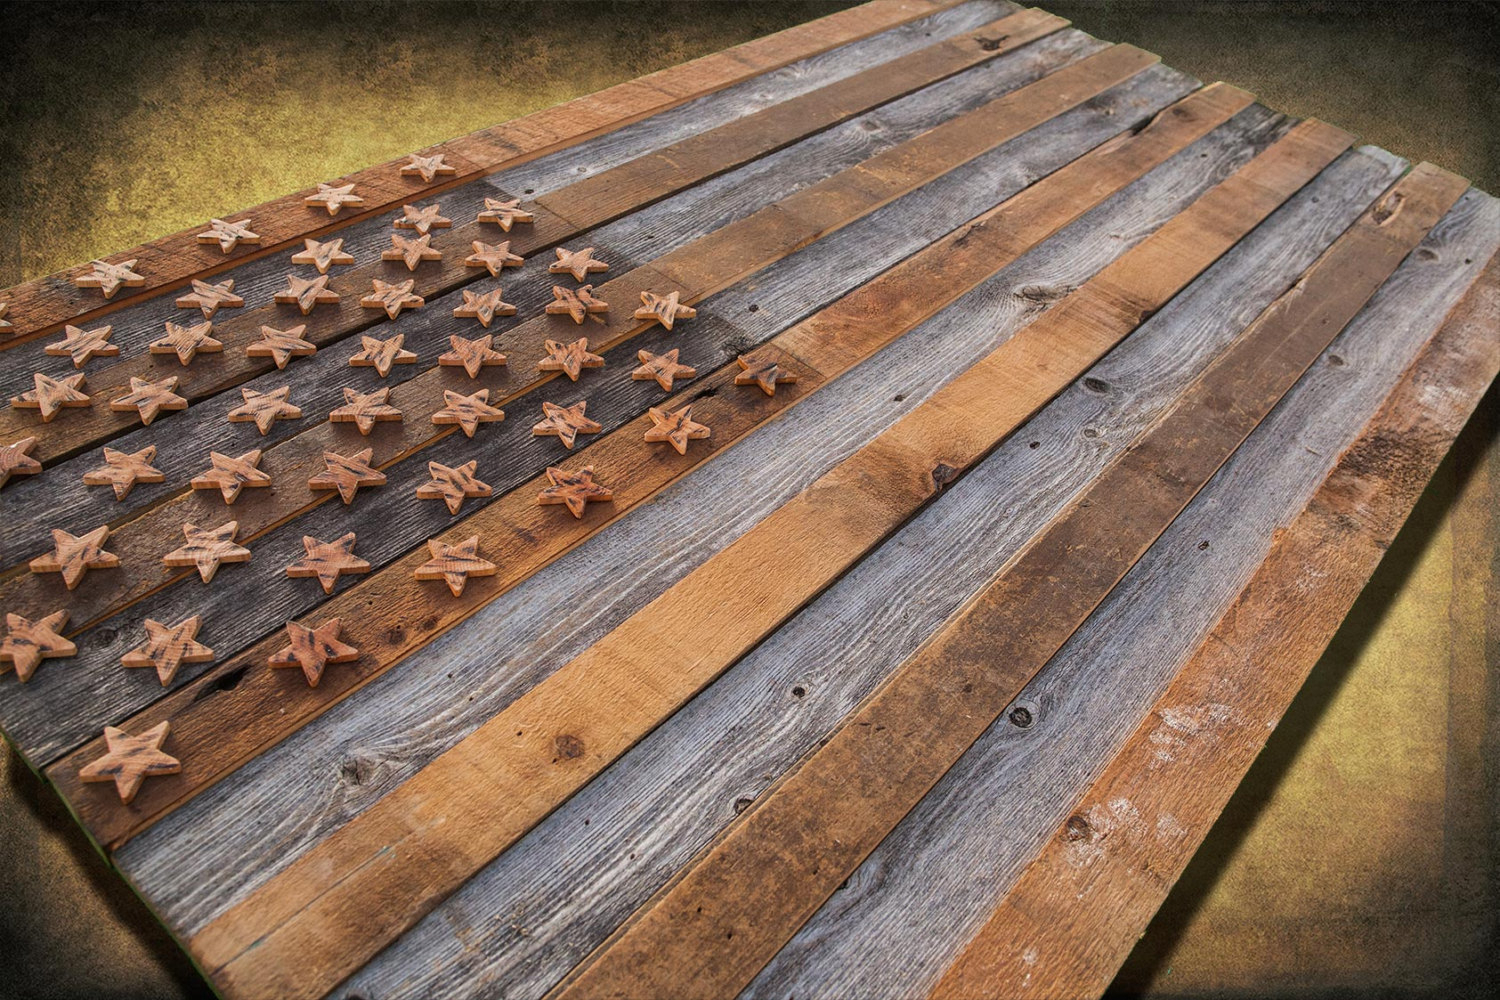 Barnwood American Flag, 100 Year Old Wood, One Of A Kind, 3d, Wooden Within Fashionable American Flag 3d Wall Decor (View 15 of 20)